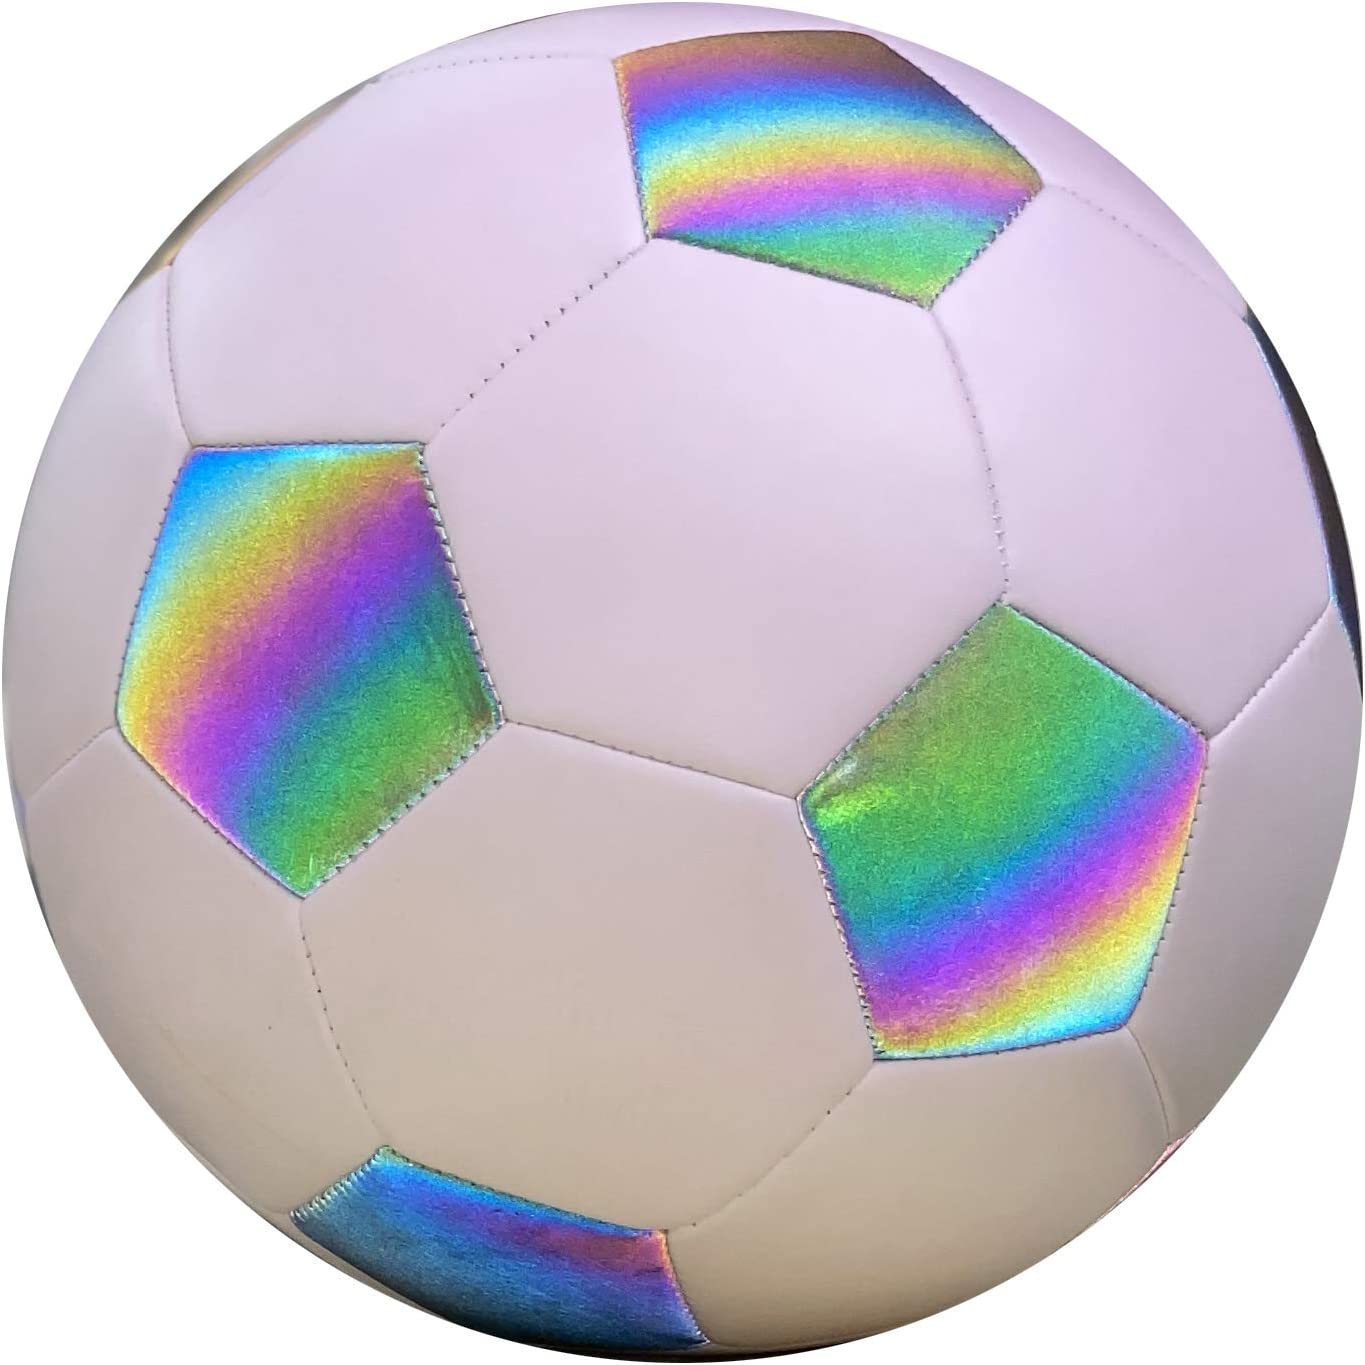 Max 47% OFF REBOIL Fantasy Soccer Ball security Size 4 Ad 5 Youth Kids Pets